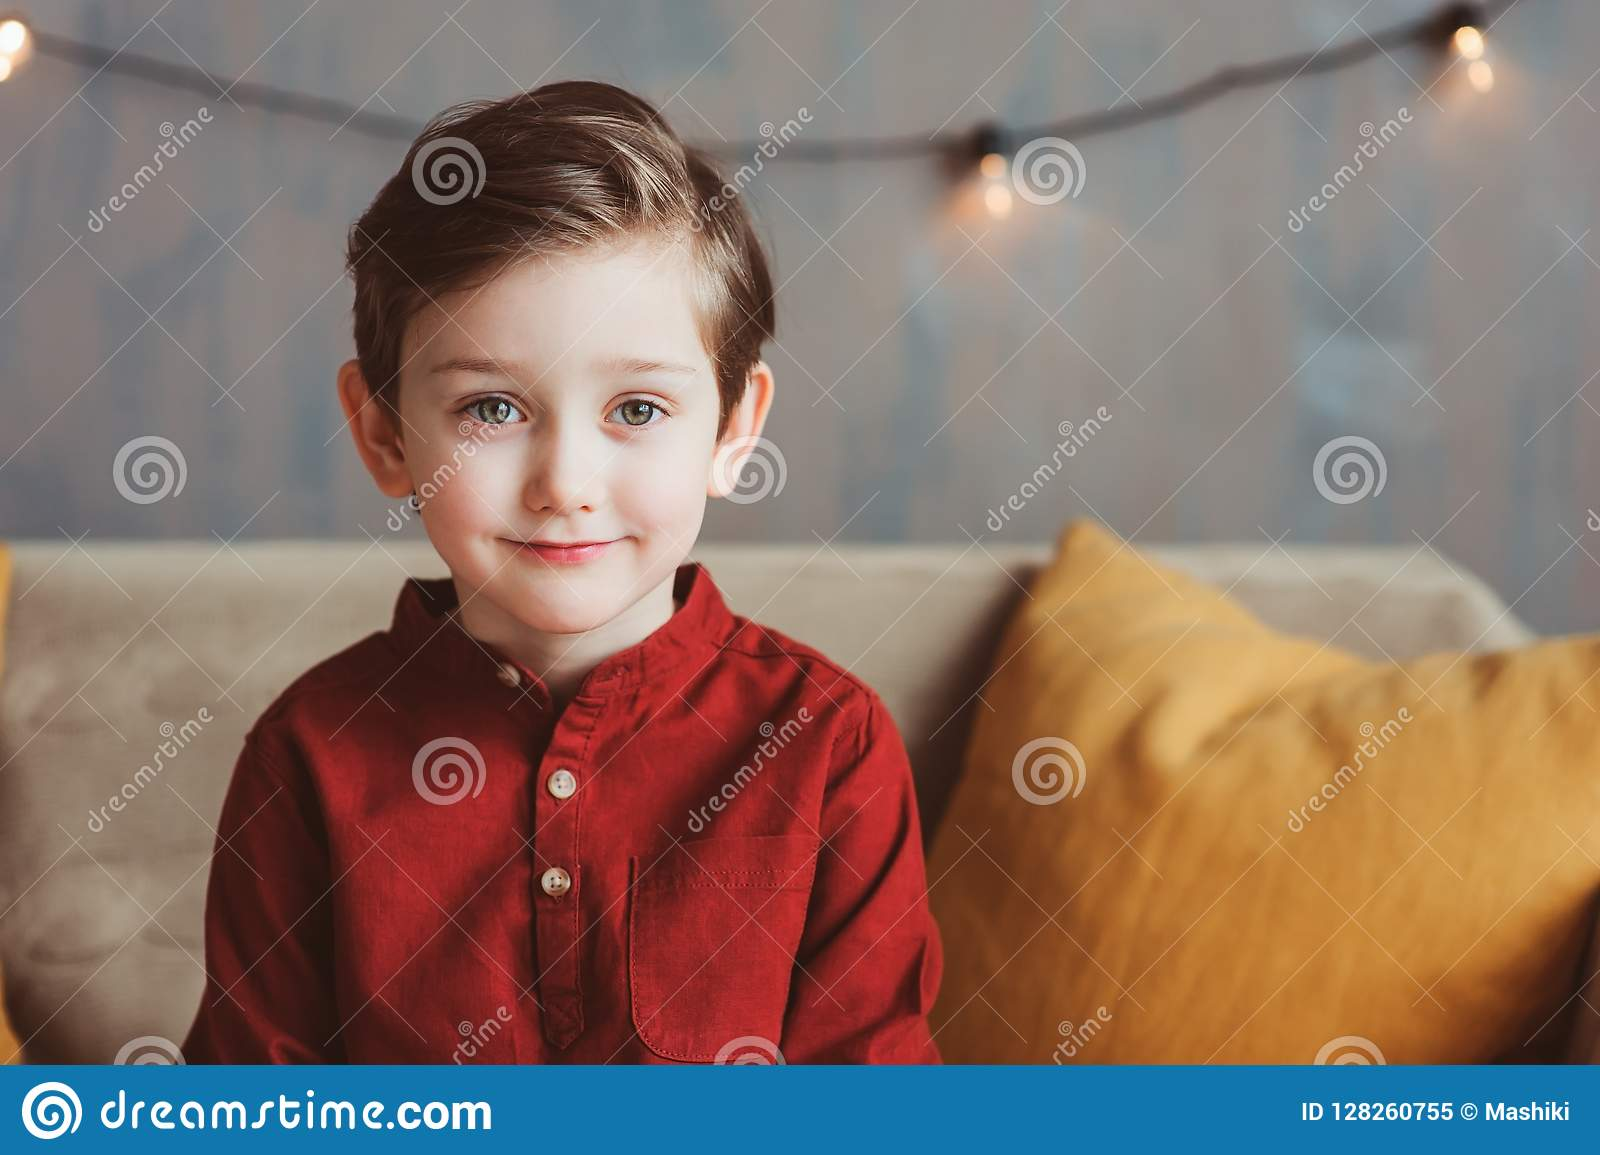 929a6ac0740a Handsome Boy Stock Images - Download 230